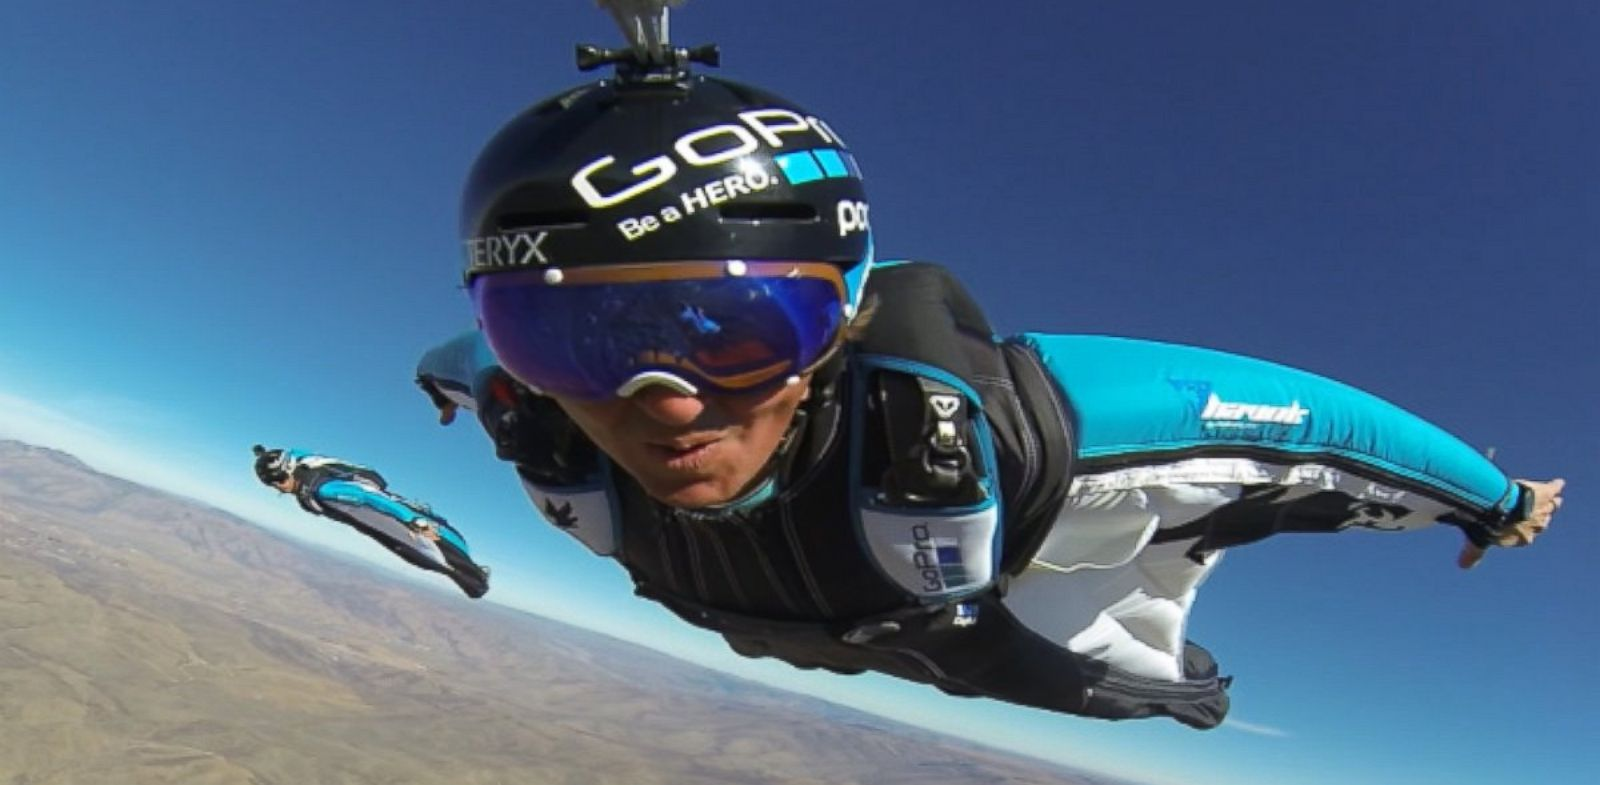 PHOTO: Marshall Miller, in front, and three friends from Utah called the GoPro Bomb Squad have made a living capturing their daring jumps from all over the world on the popular camera.